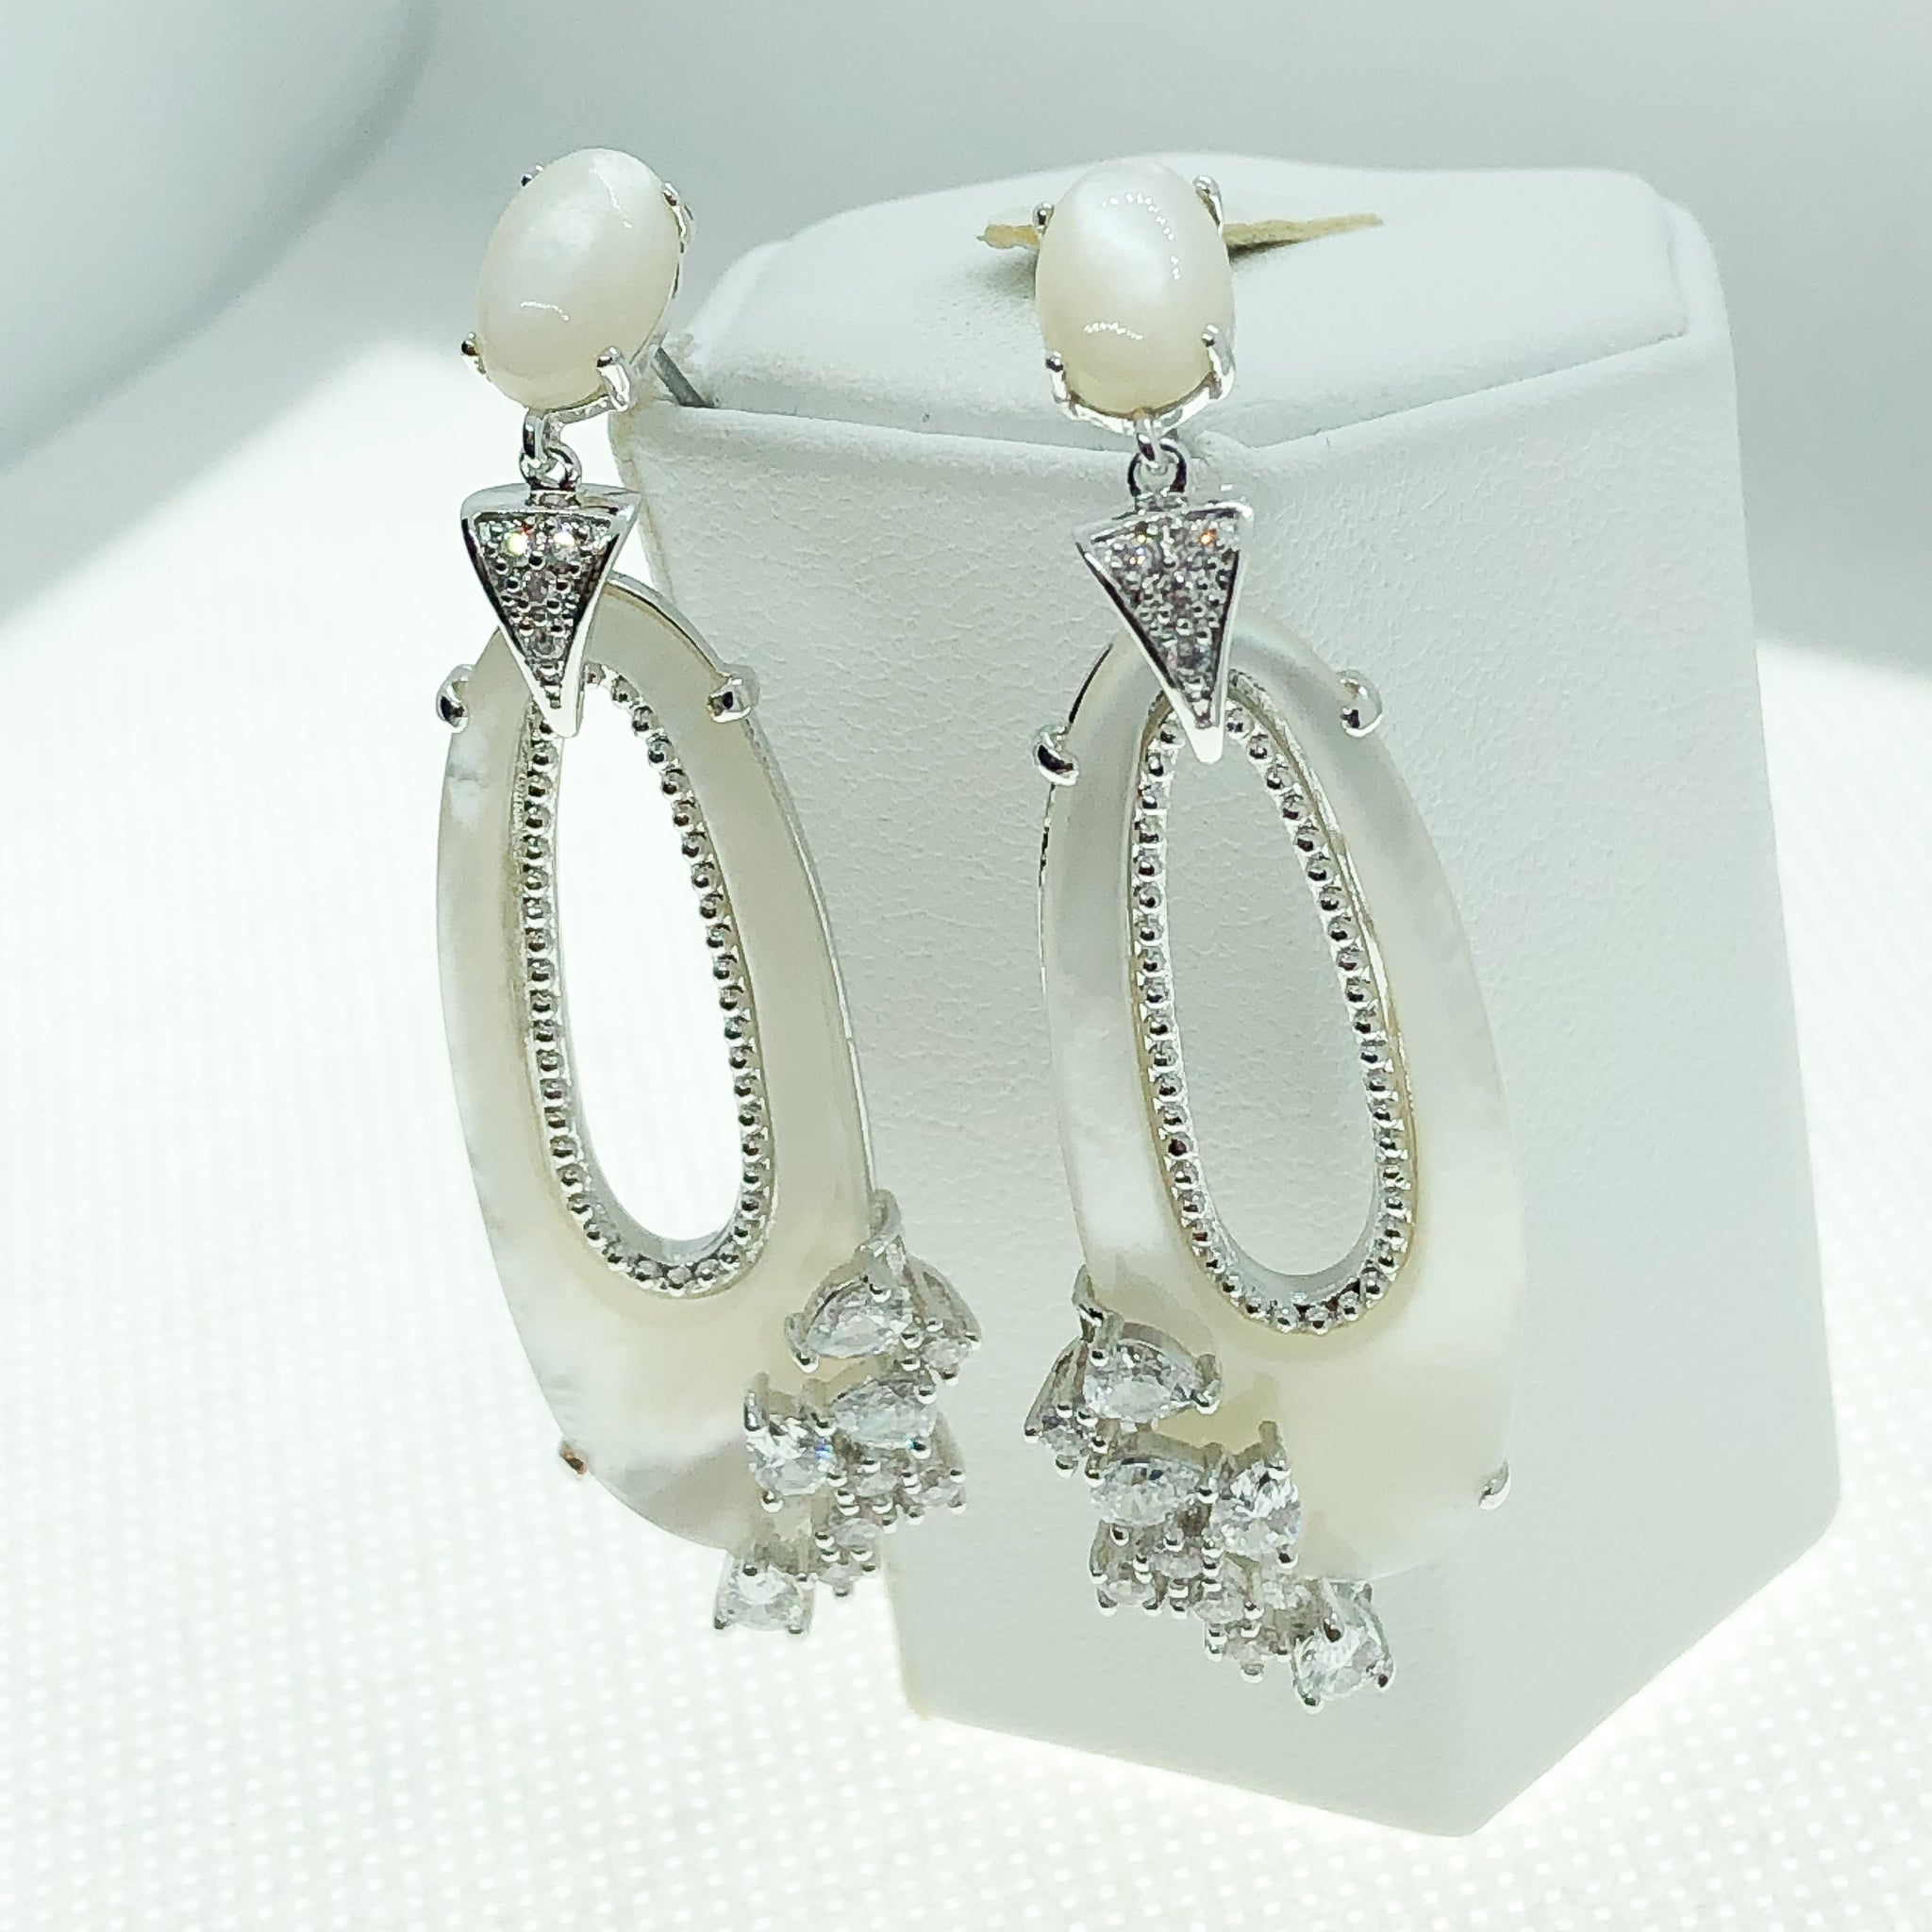 ID: E4928 Women Fashion Jewelry 18K White Gold GF Mother Pearl Earrings With Diamonique Accent Lady Engagement Wedding Drop Dangle